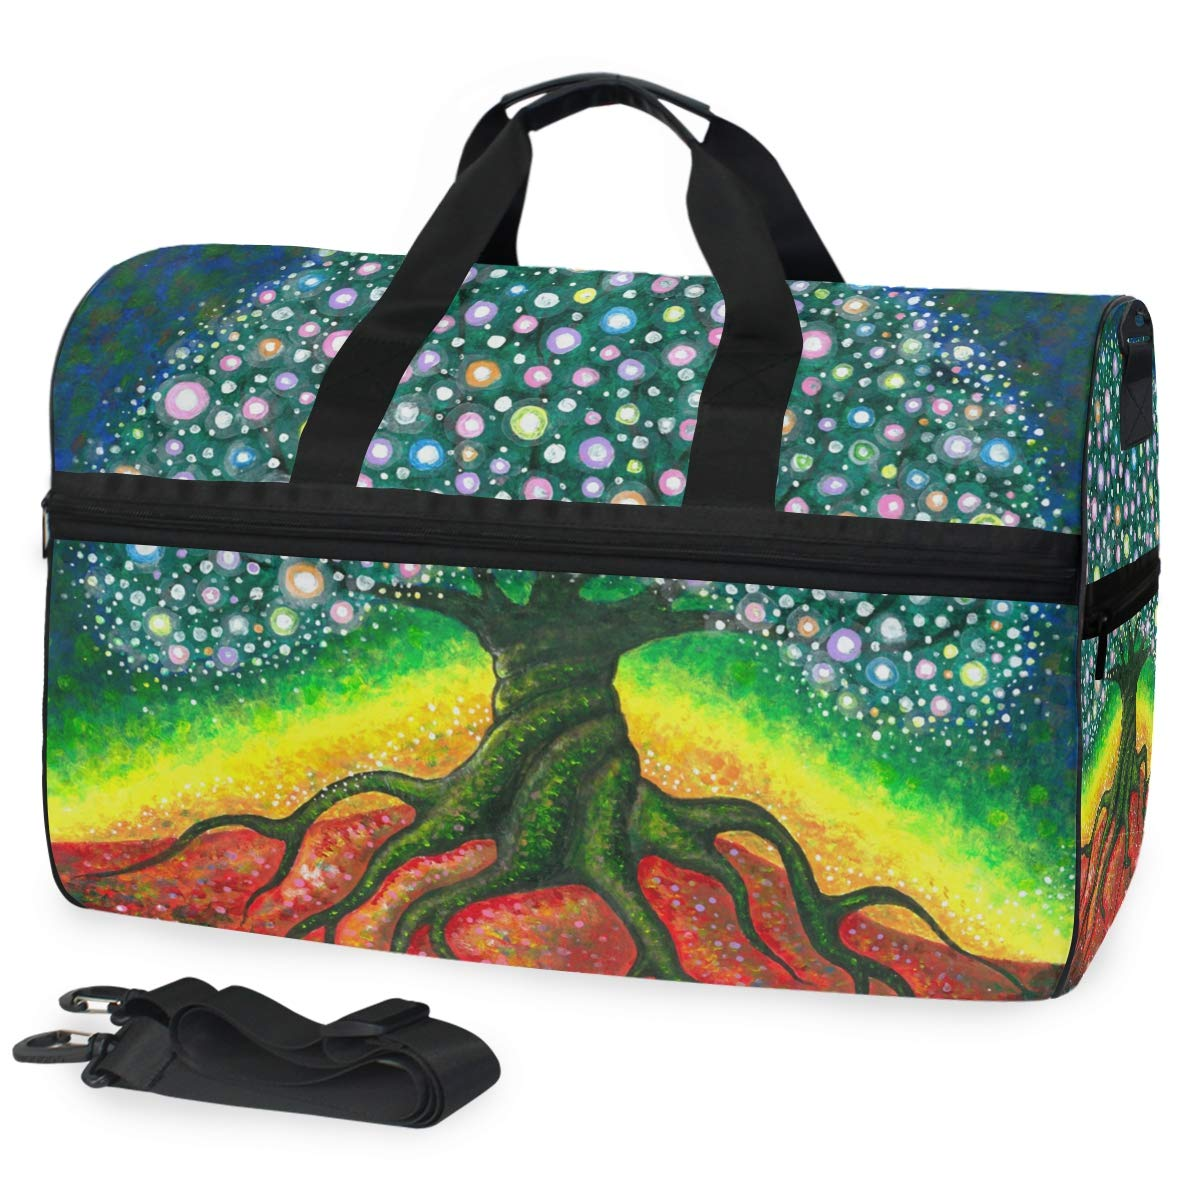 Tree Of Life Sketch Large Canvas shoulder bag with Shoe Compartment Travel Tote Luggage Weekender Duffle Bag